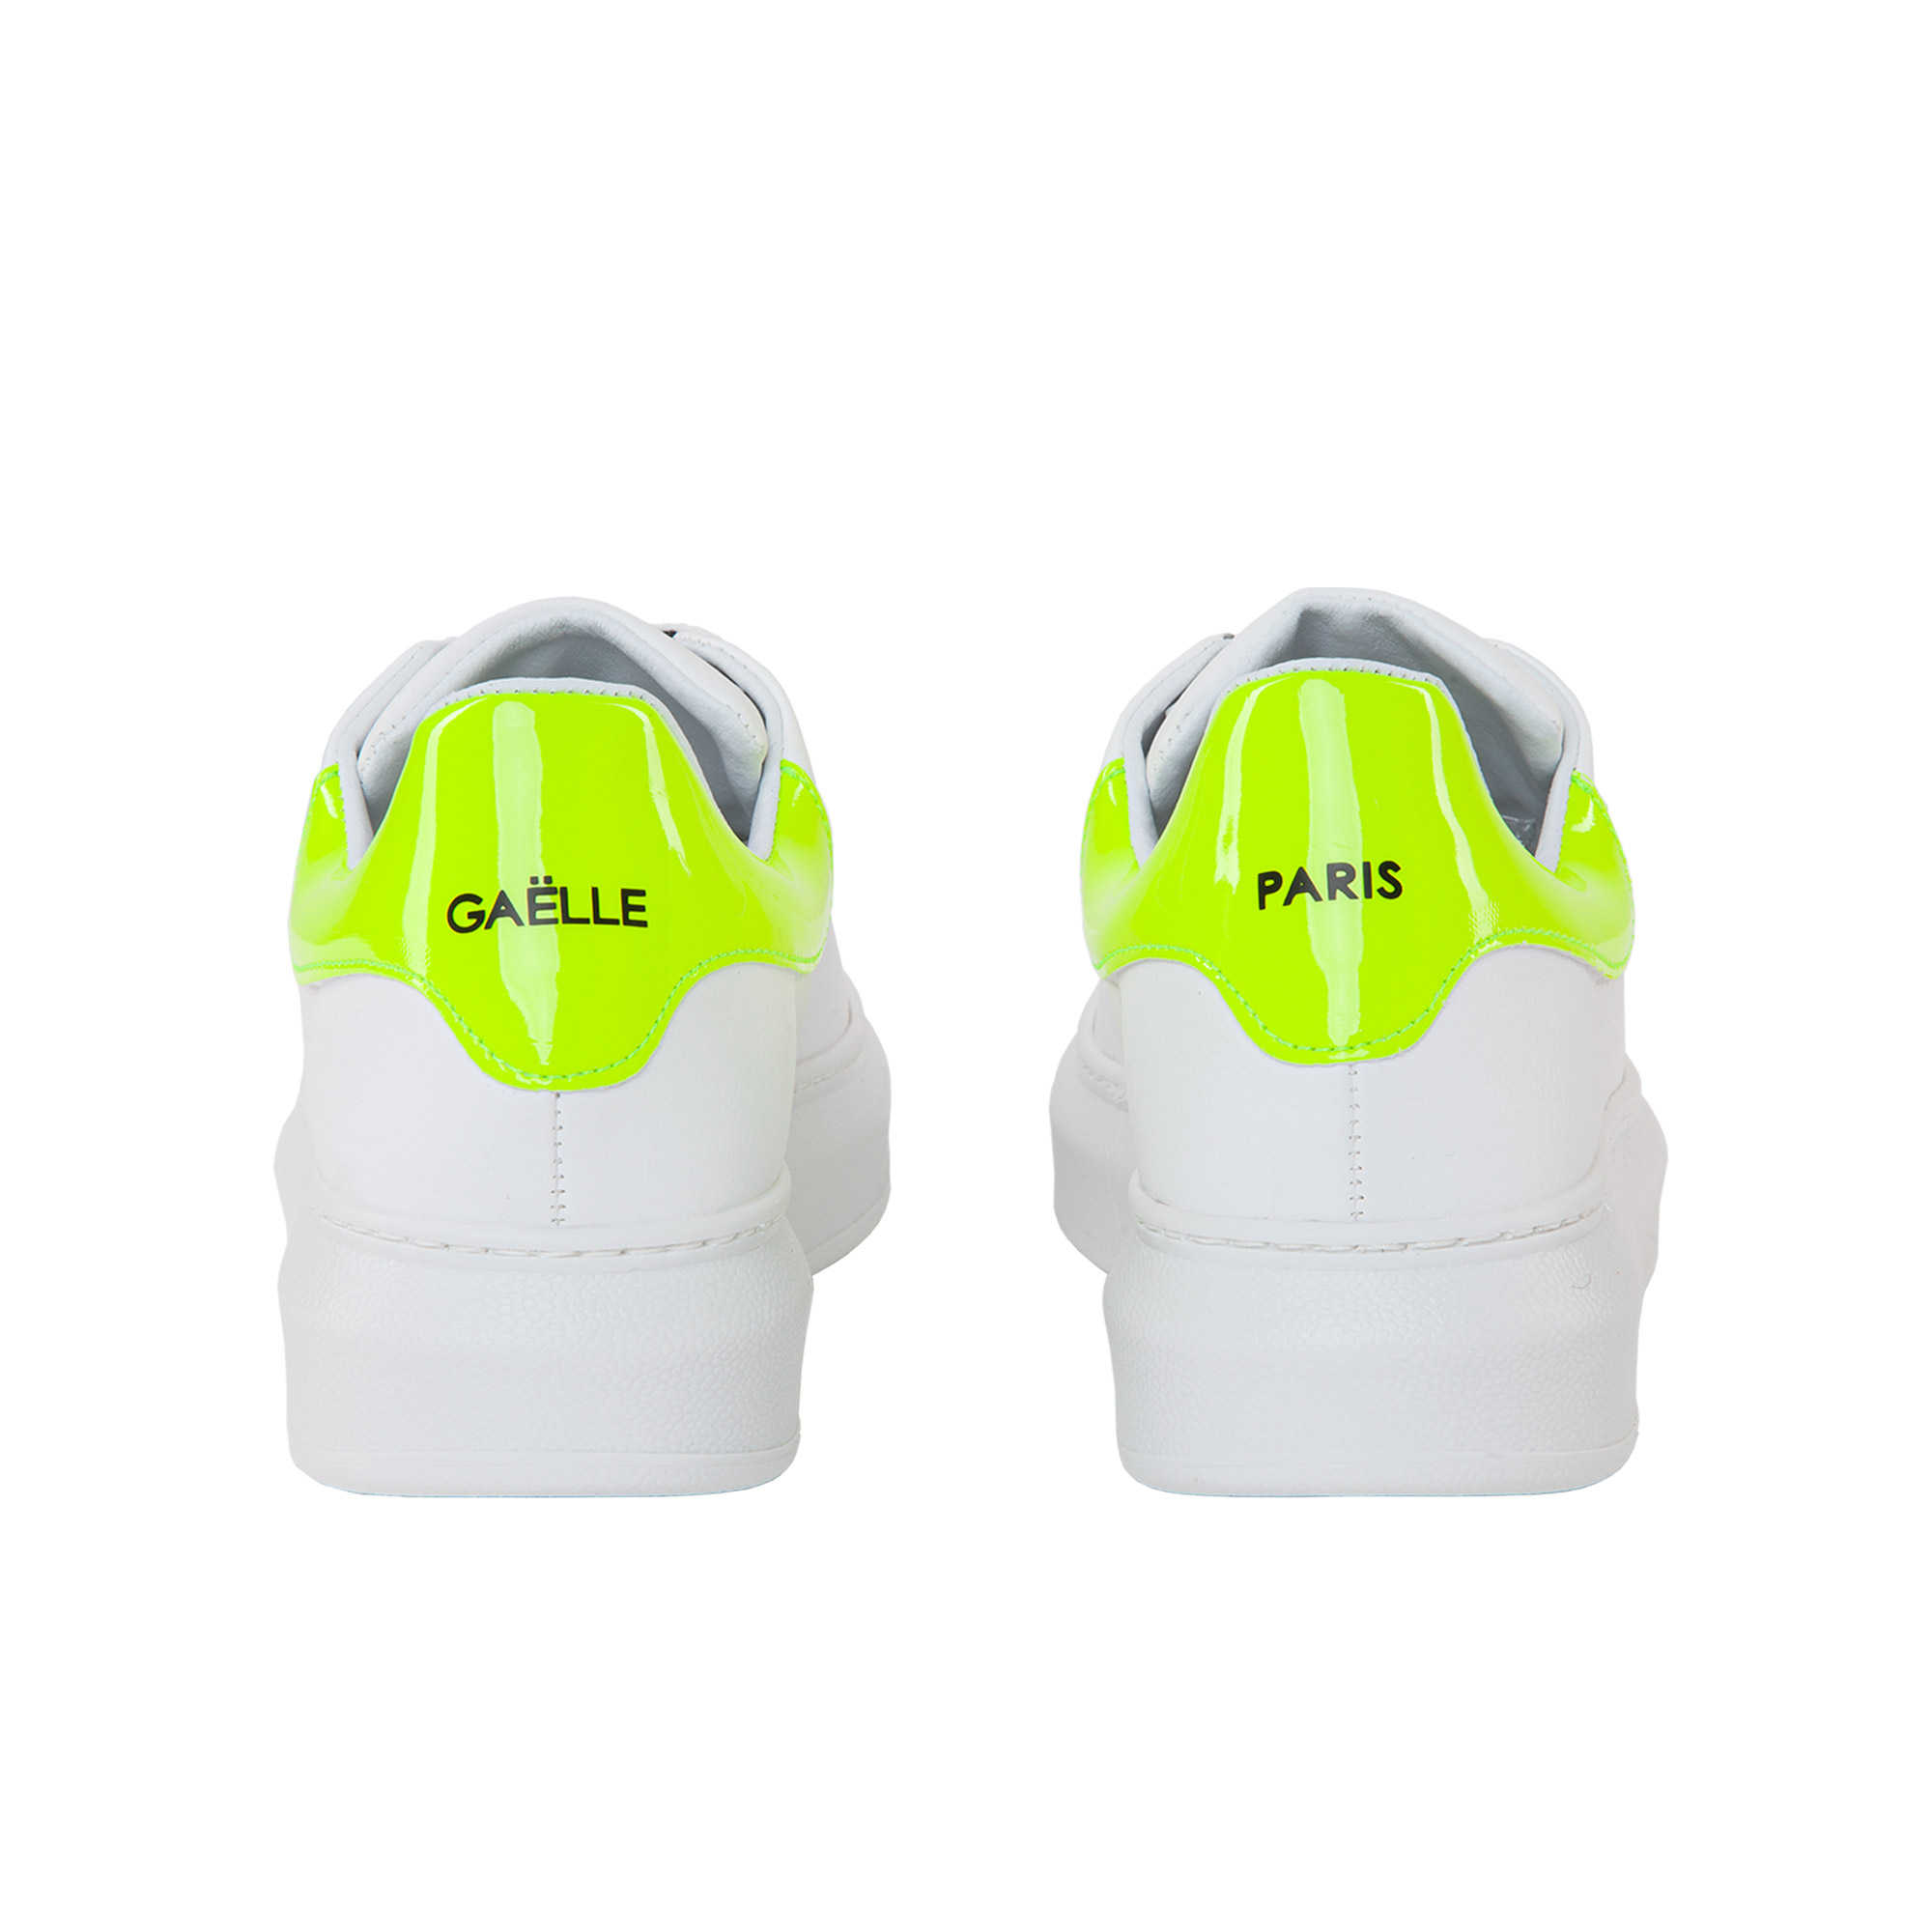 SNEAKERS - GBDA1302 - GAELLE PARIS